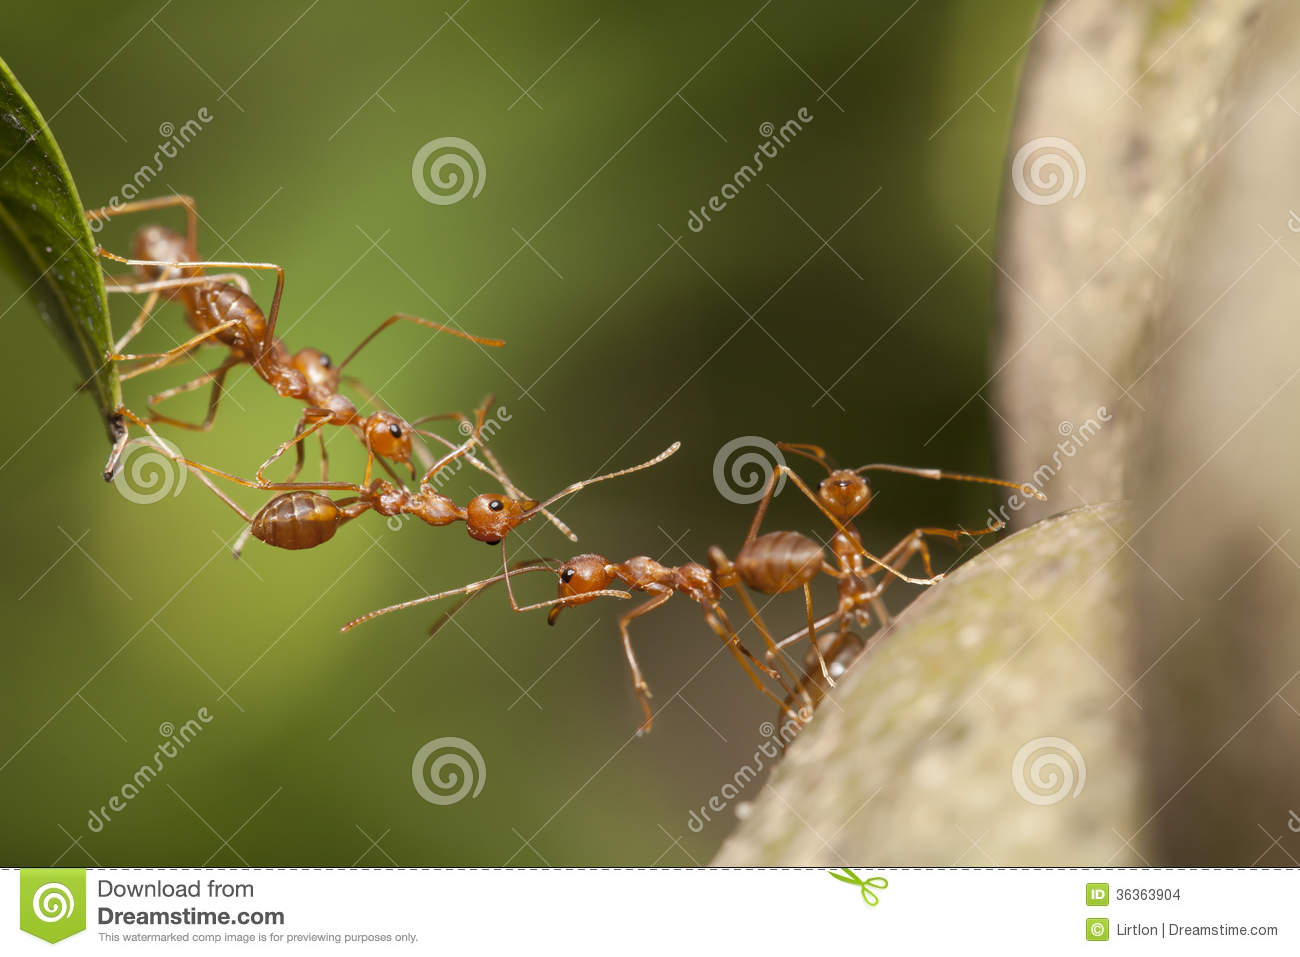 Ant teamwork stock photo. Image of life, teamwork, insect ...